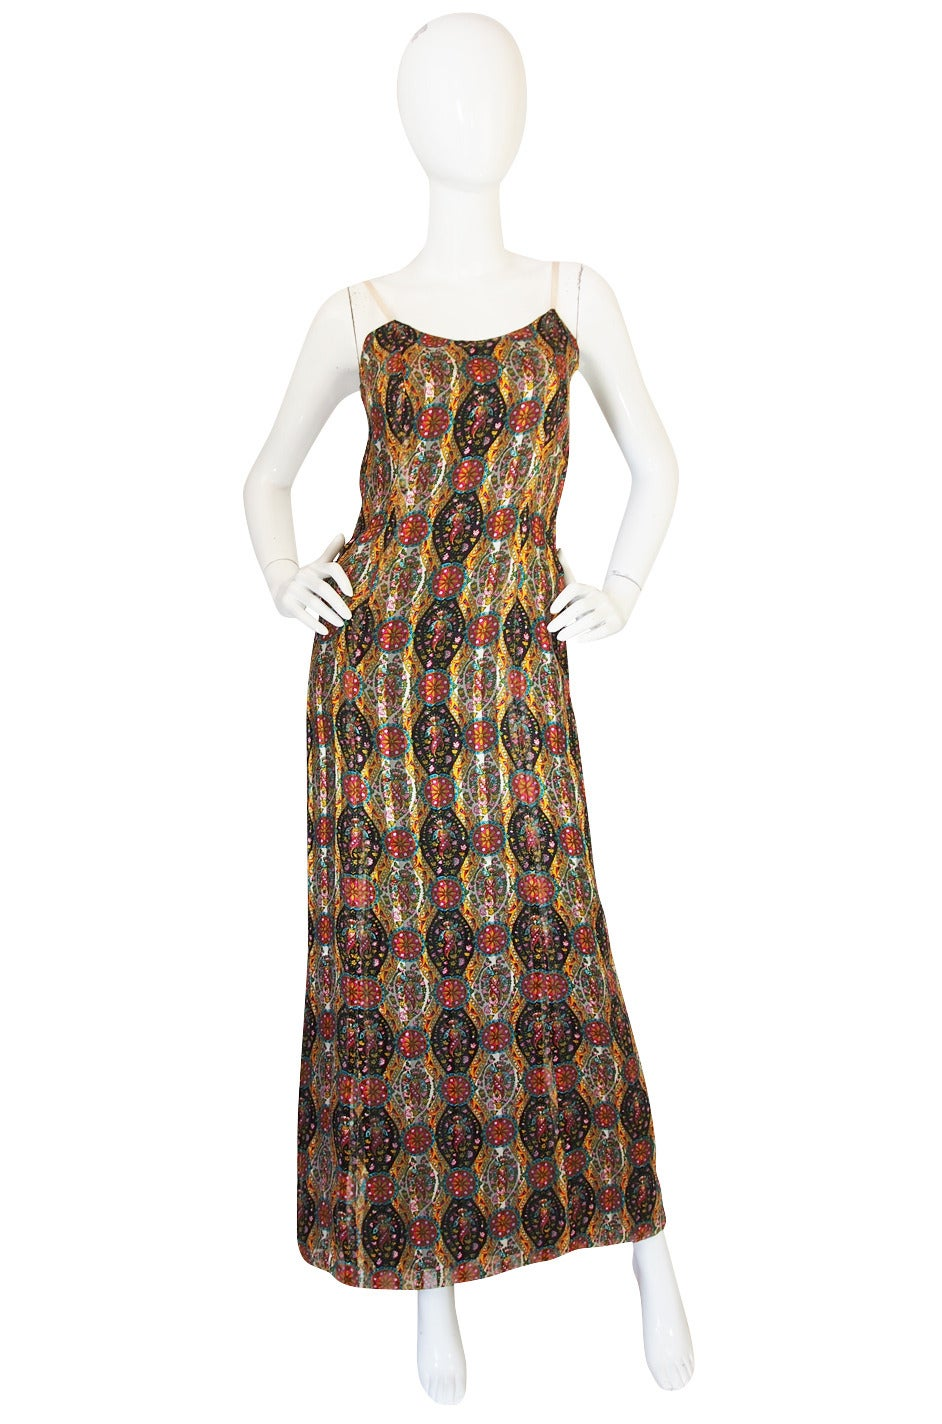 1974 true haute couture chanel silk chiffon dress at 1stdibs for Haute couture dress price